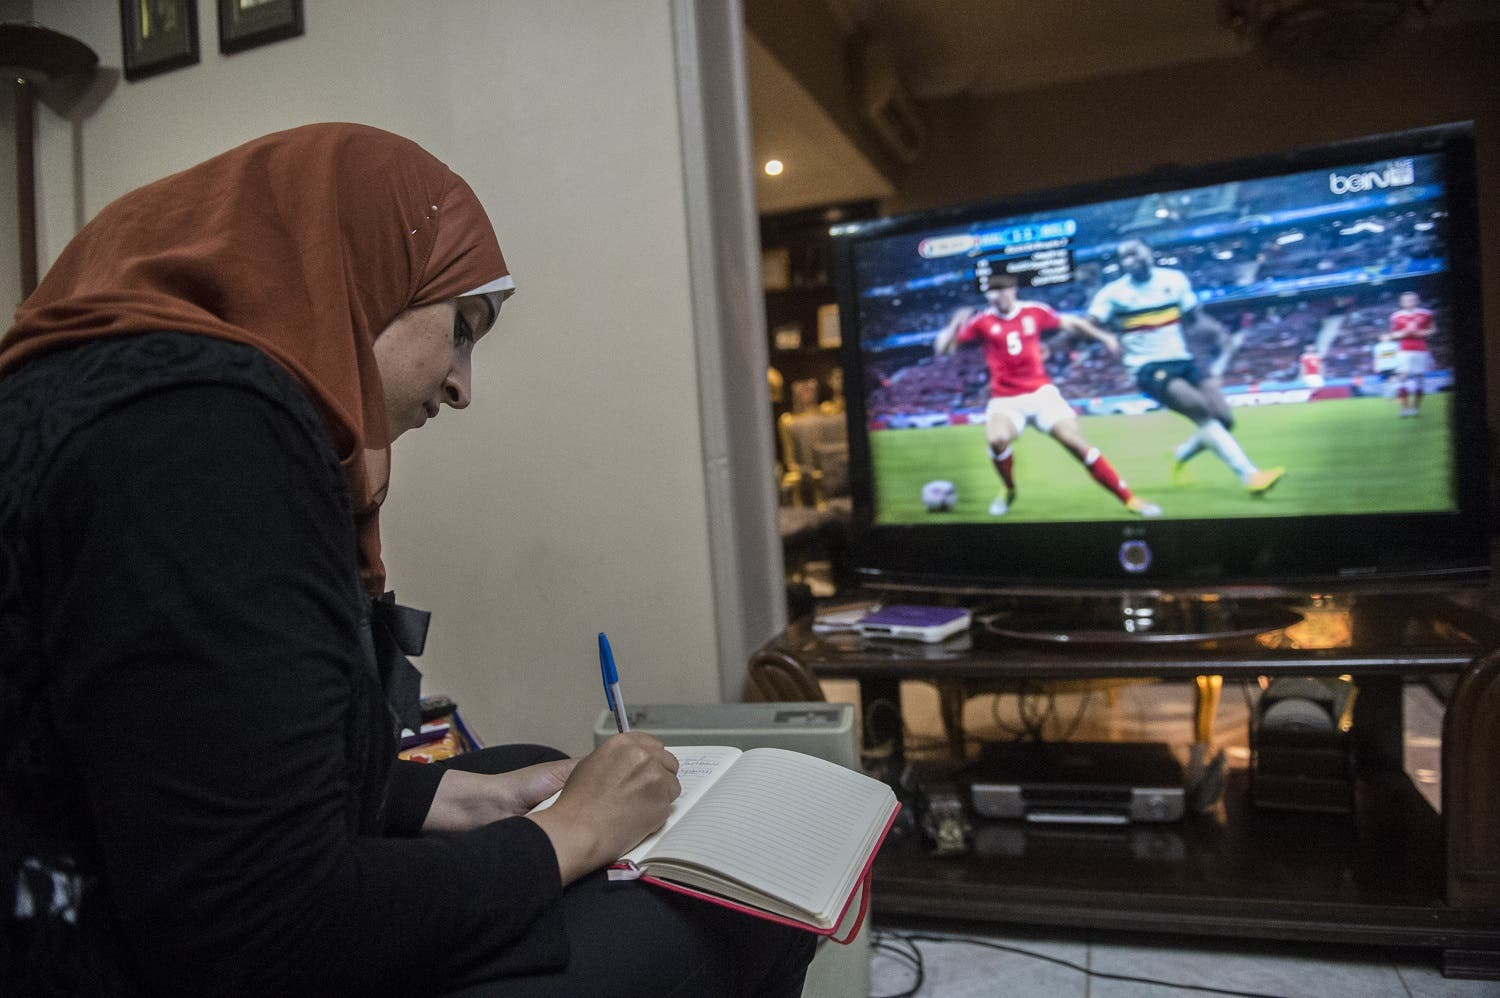 Football analyst Manar Sarhan takes notes while watching the Euro 2016 quarter-final between Wales and Belgium at her home in the Egyptian capital Cairo. (AFP)